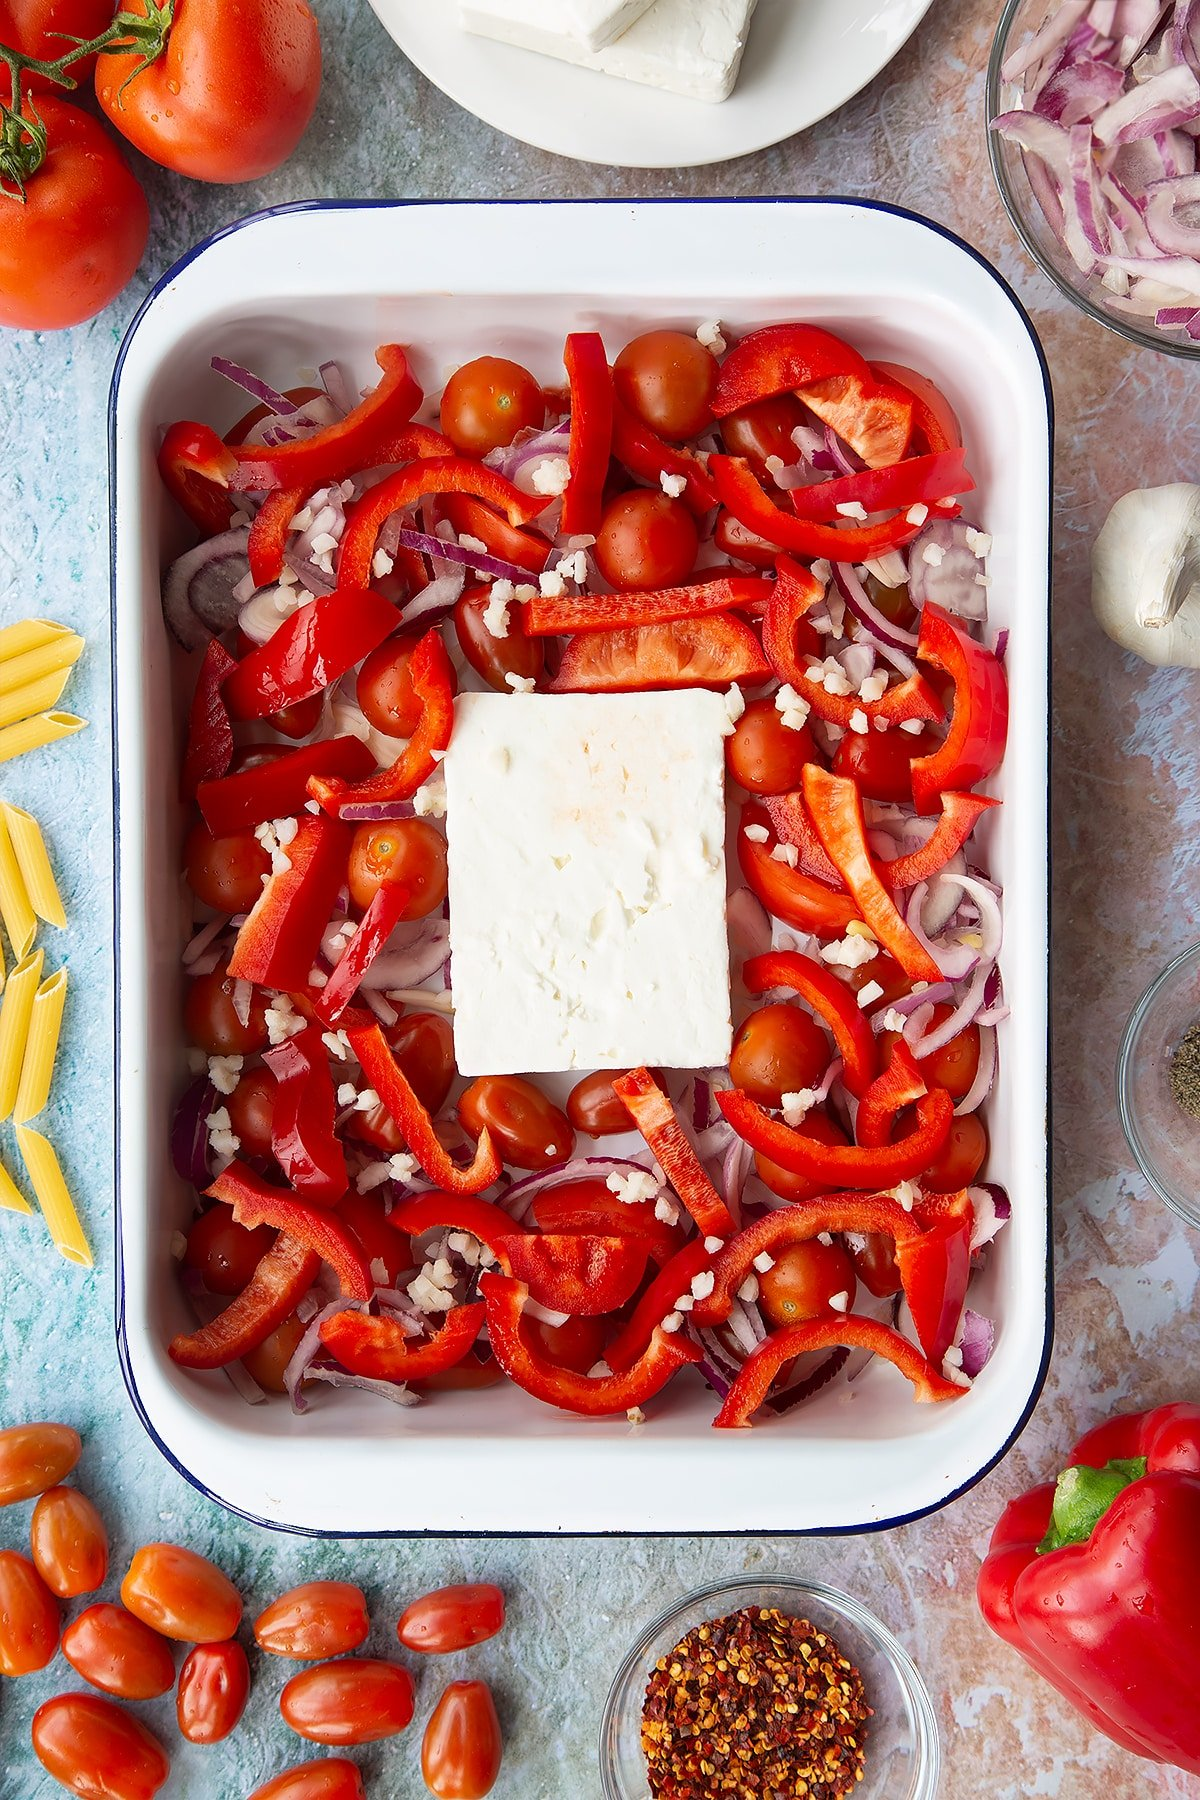 A block of feta surrounded by tomatoes, red pepper, red onion and garlic in a large white roasting tray. Ingredients to make baked feta pasta surround the tray.